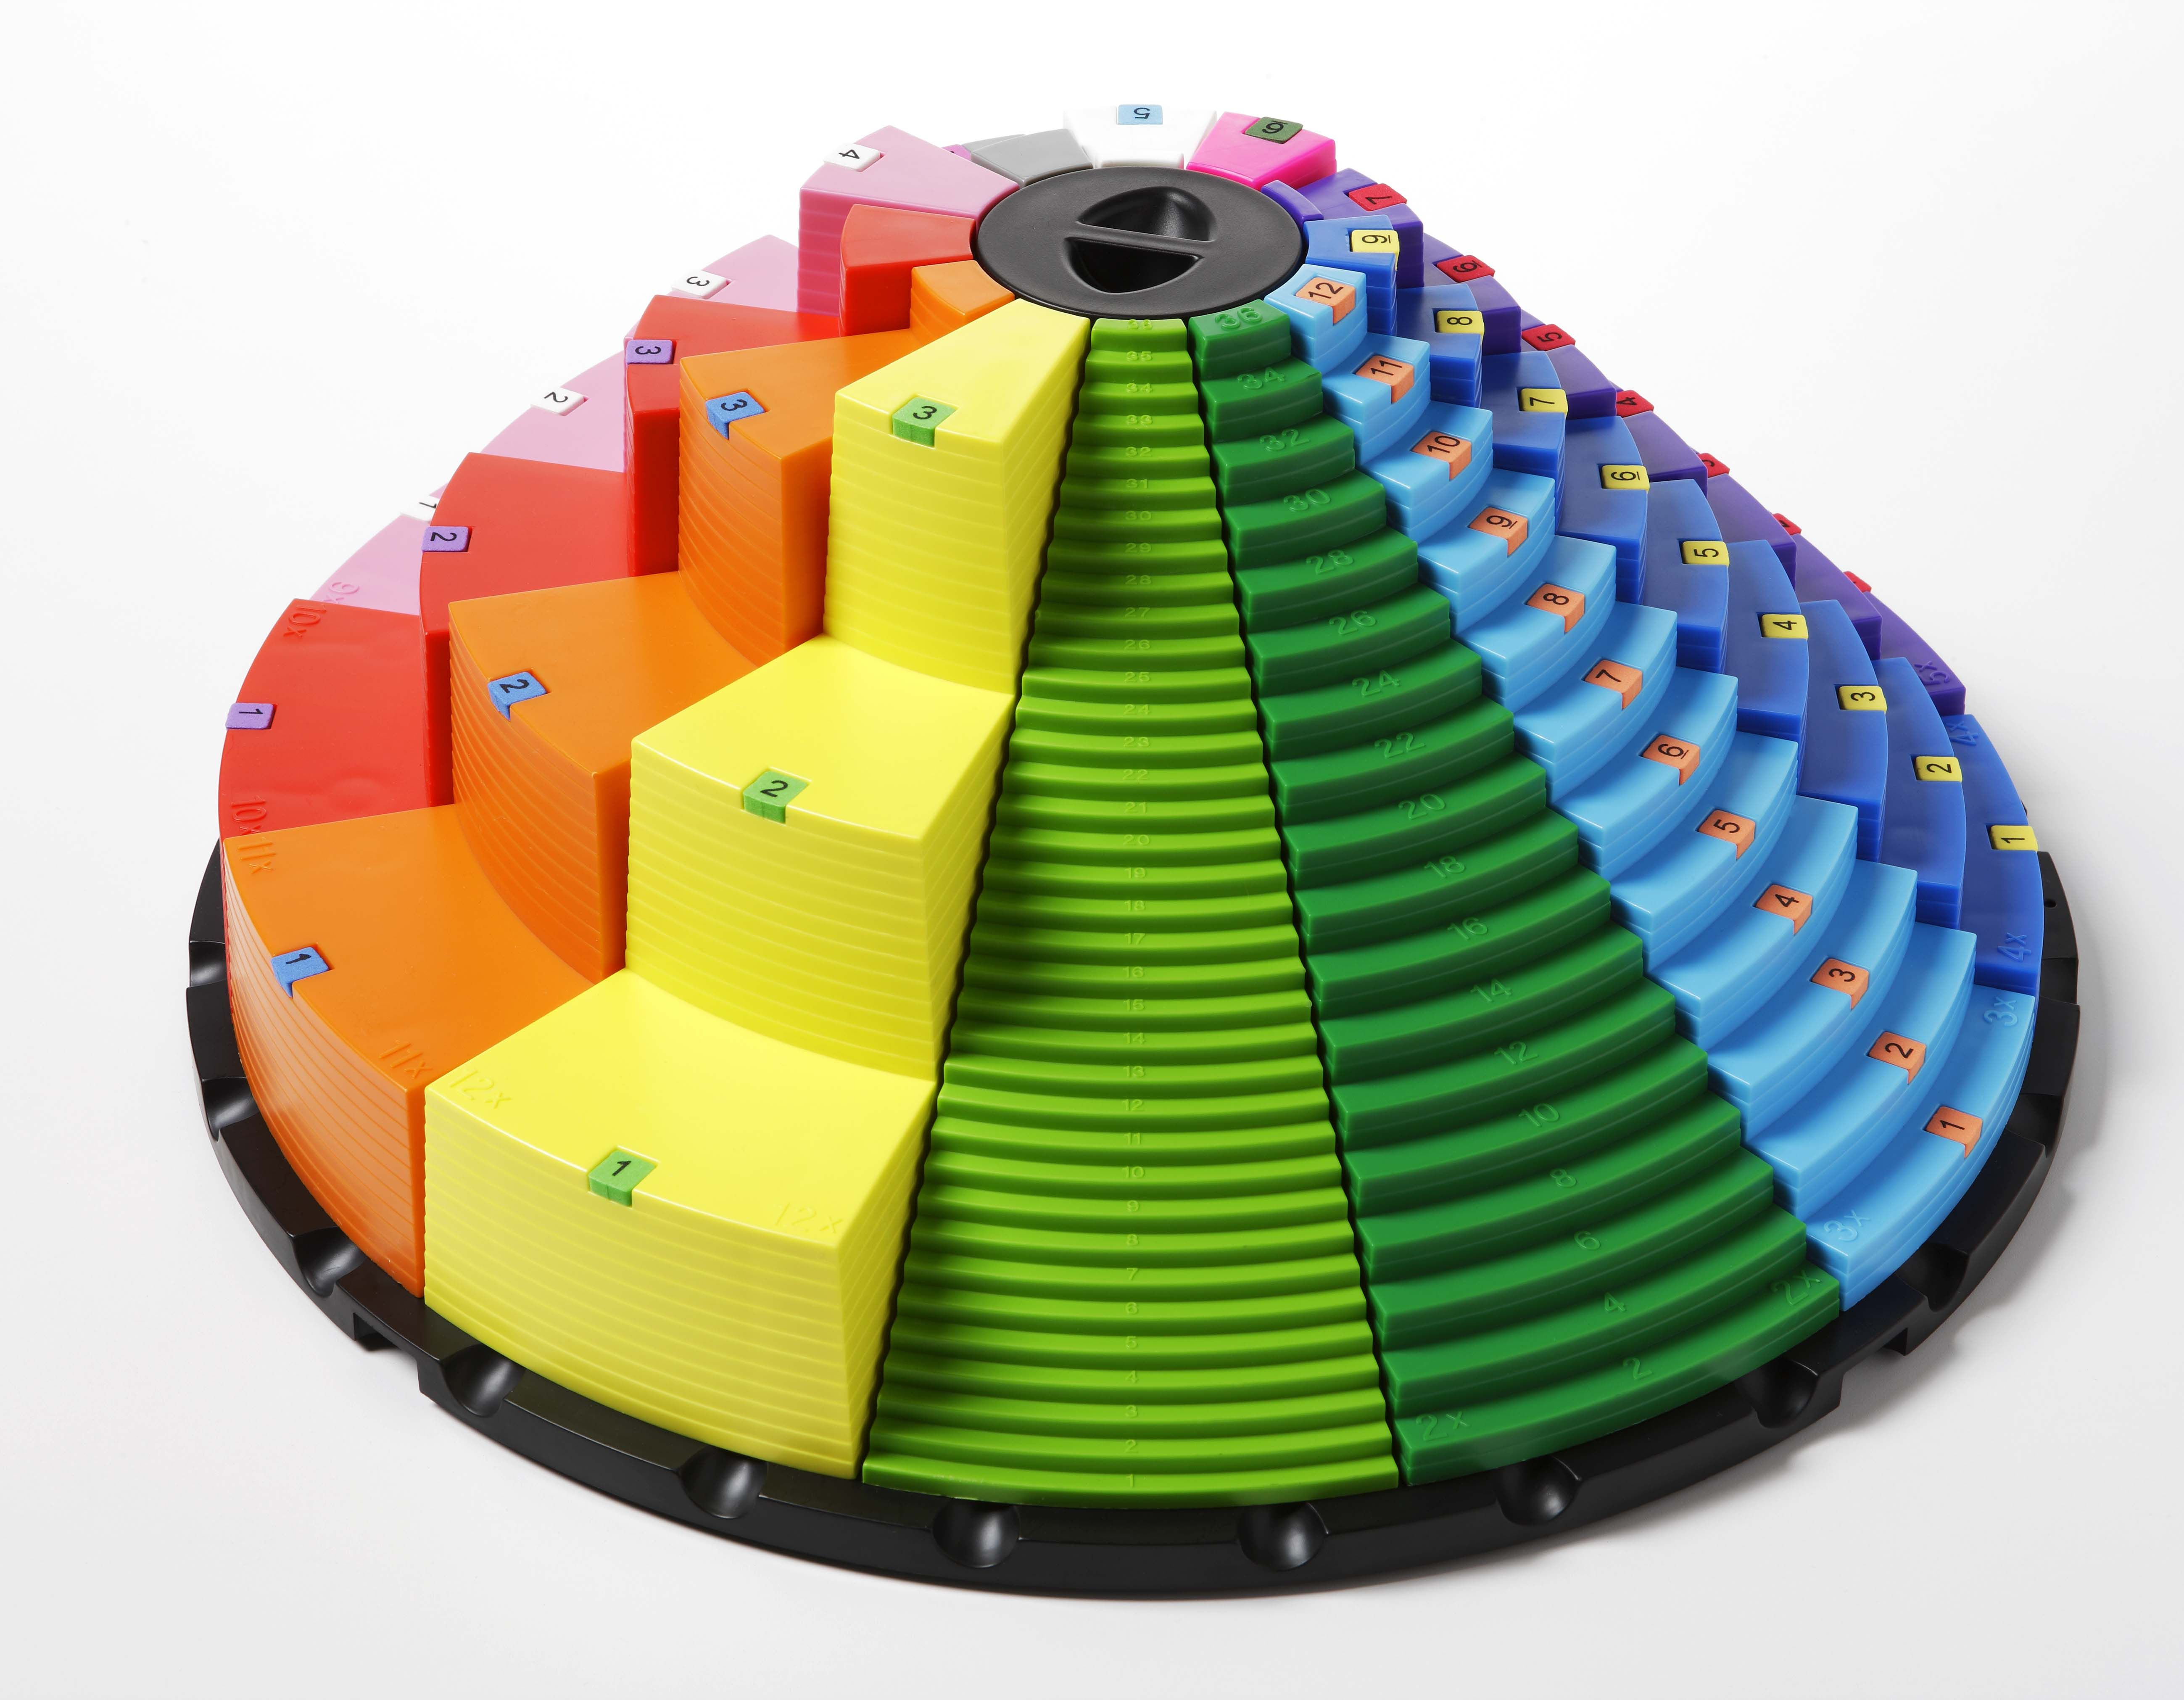 The Colorful Rotating Structure Is A Model Of Math Based On Learn About Electronics With Snap Circuits Junior Times Tables And Number Lines All Equivalent Values Are At Same Height So You Can See